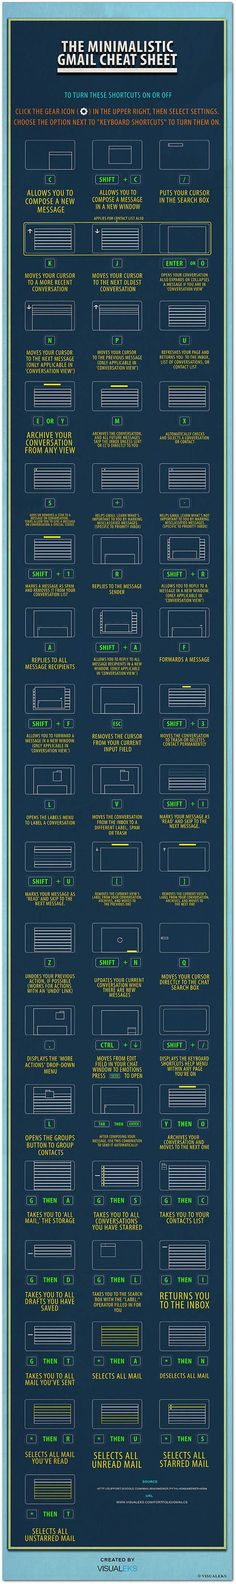 52 Gmail Shortcuts You Should Know About - Edudemic